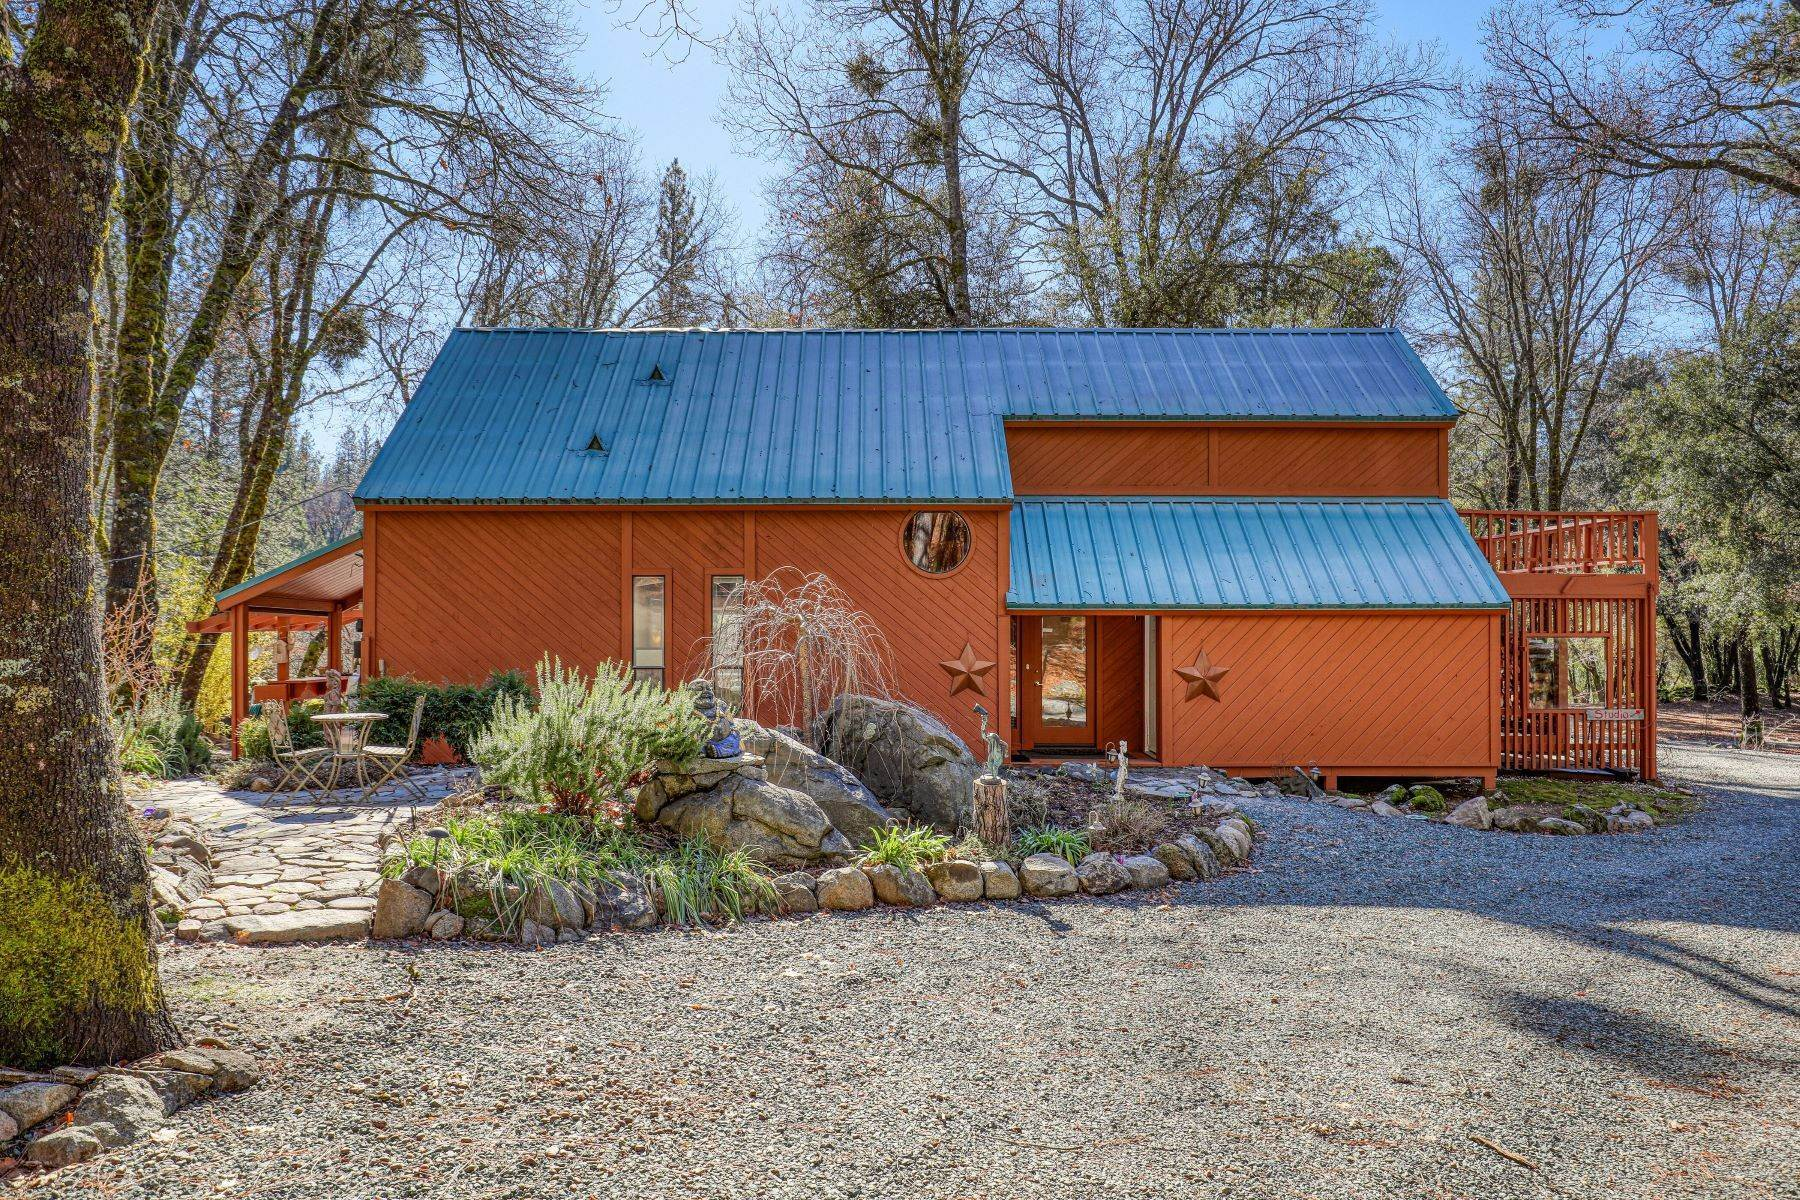 Property for Active at 18834 Rock Creek Rd. Nevada City, CA 95959 18834 Rock Creek Road Nevada City, California 95959 United States